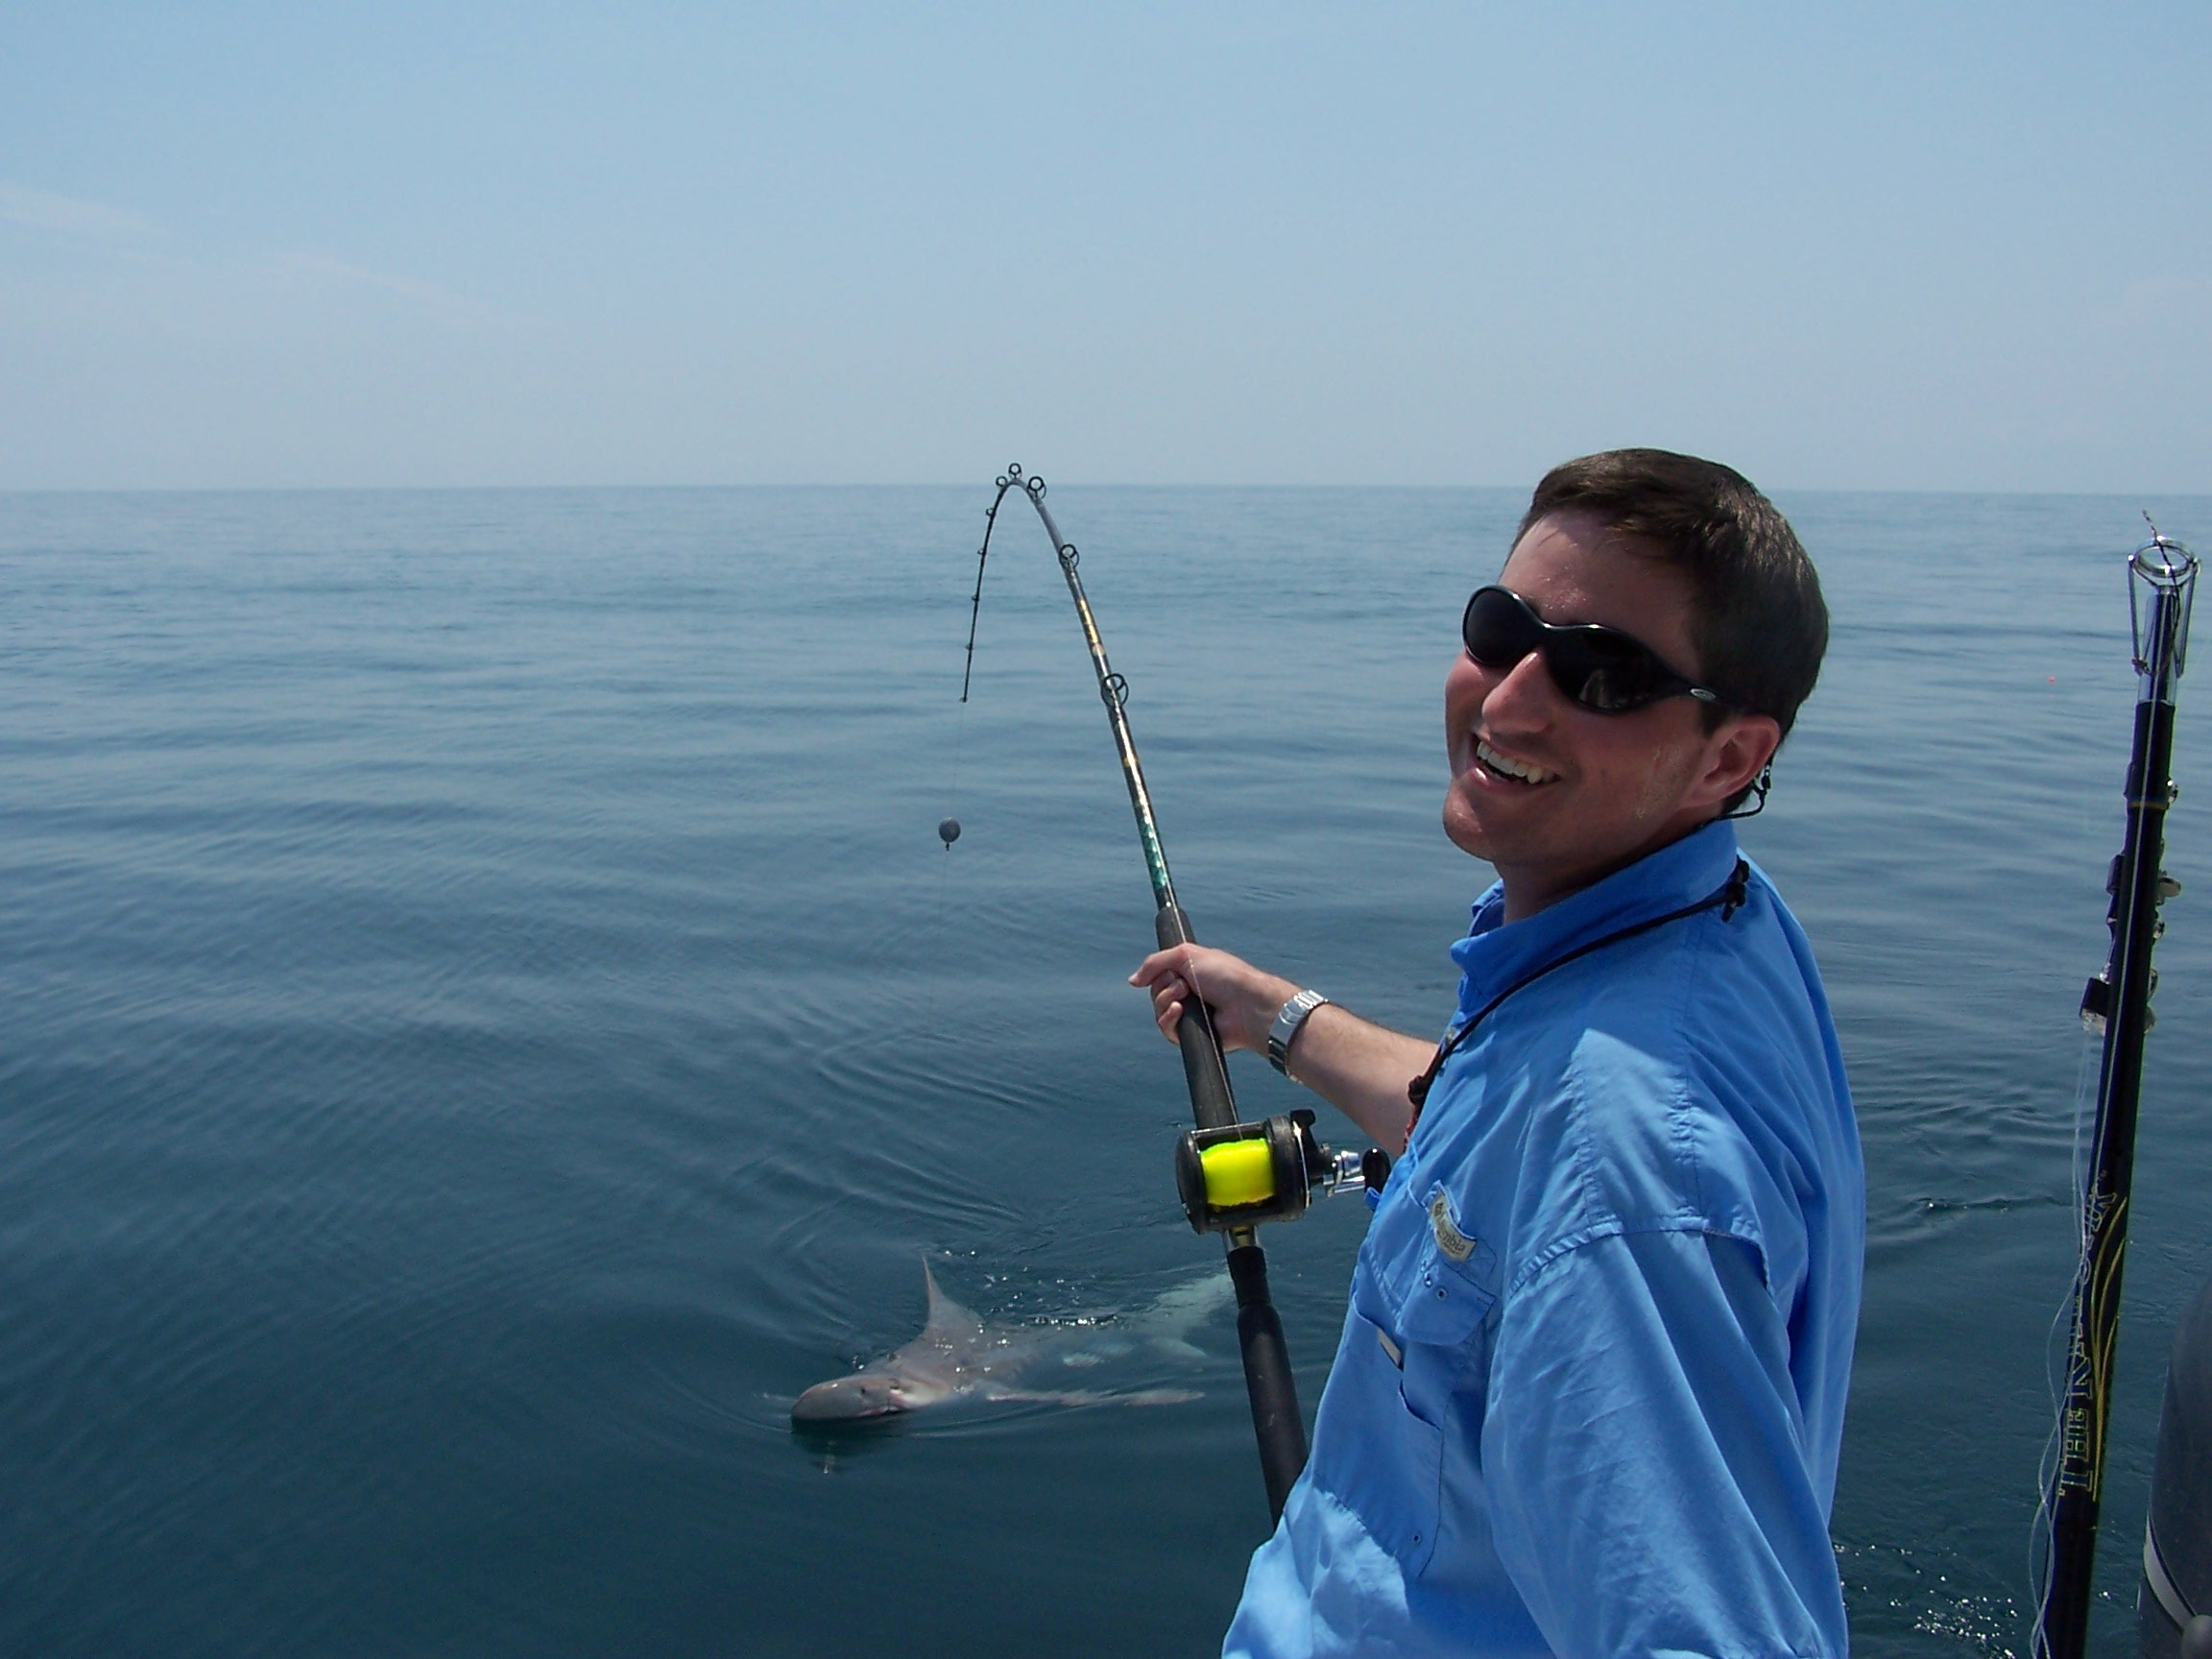 Hilton head shark fishing charters 3 hour shark fishing for South carolina fishing